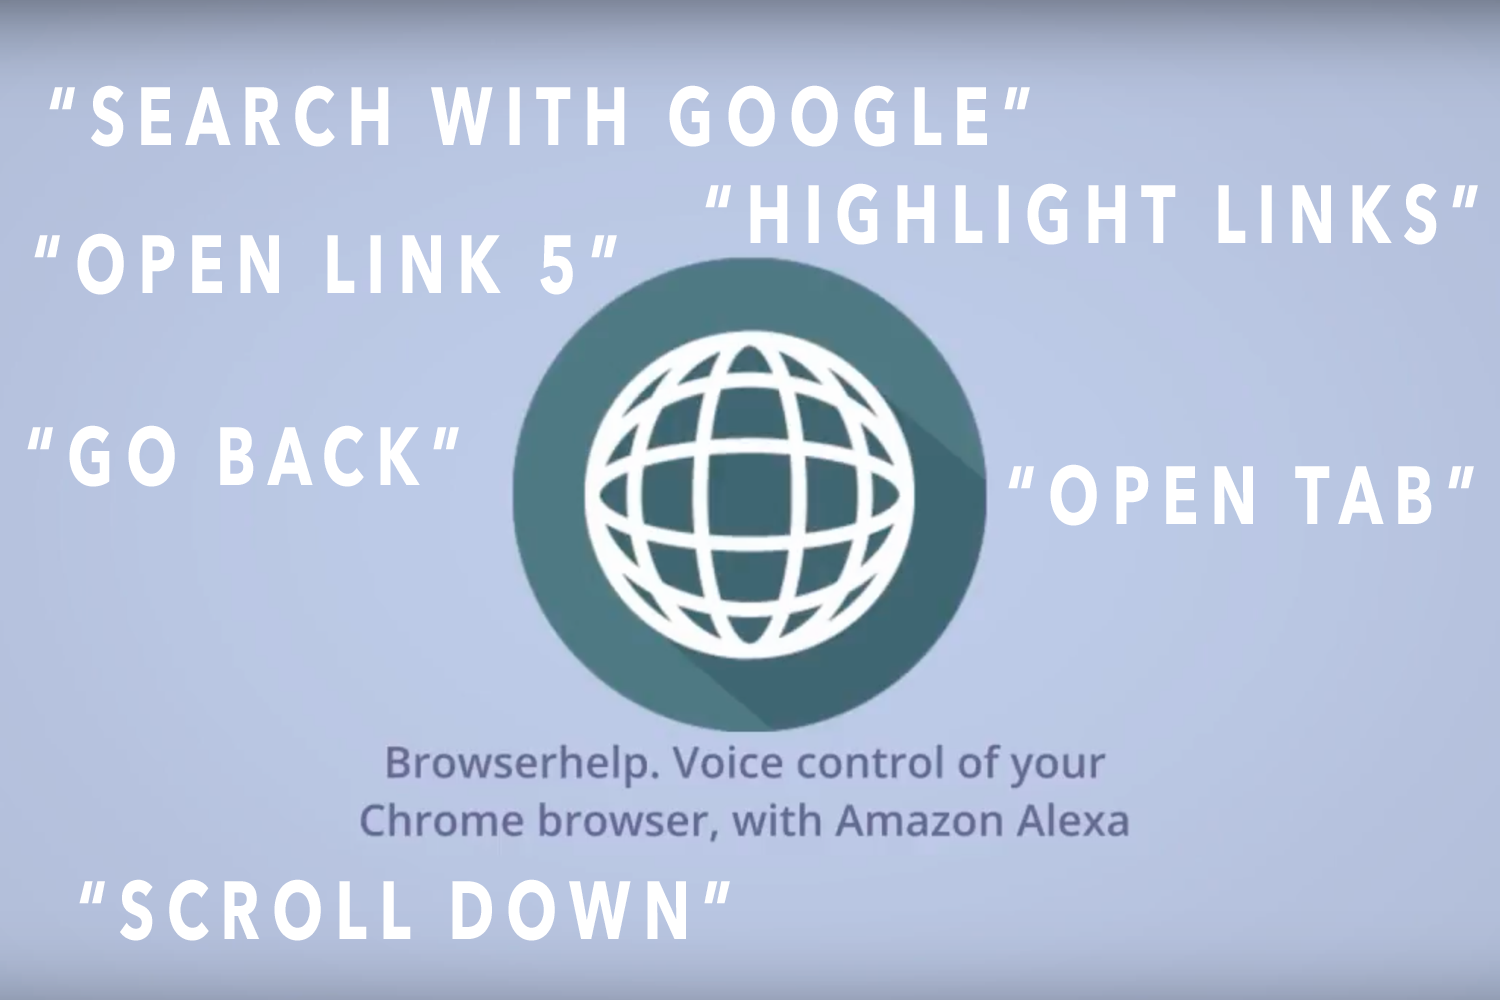 Alexa BrowserHelp - Voice control of your Chrome browser via